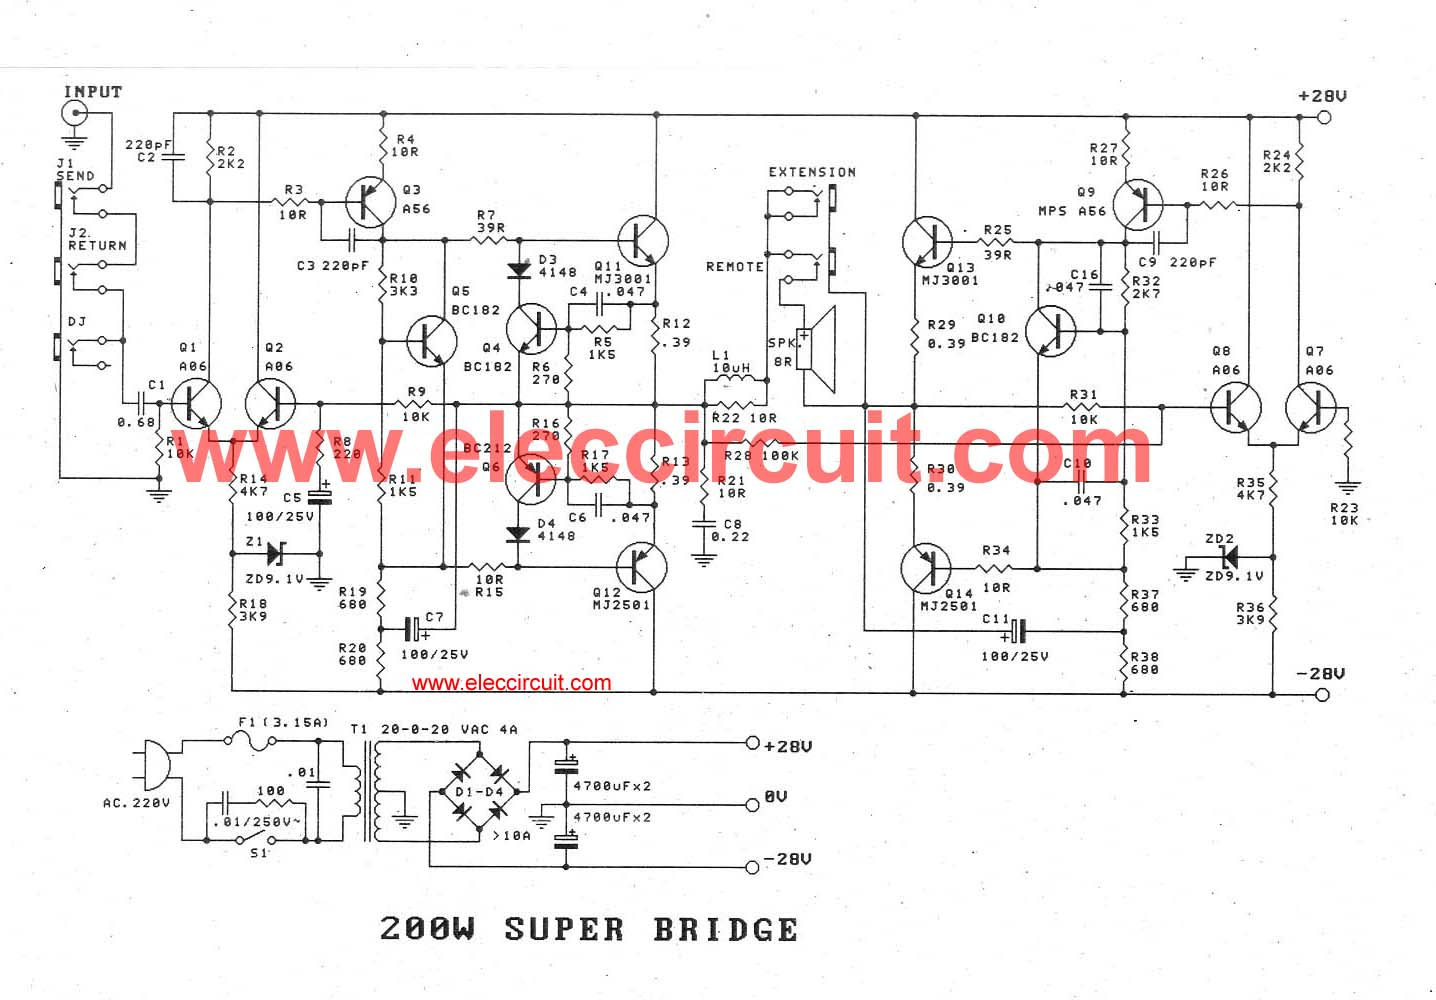 5200 1943 Mosfet 200 200 Watt Ample Ckt Pcb Layout